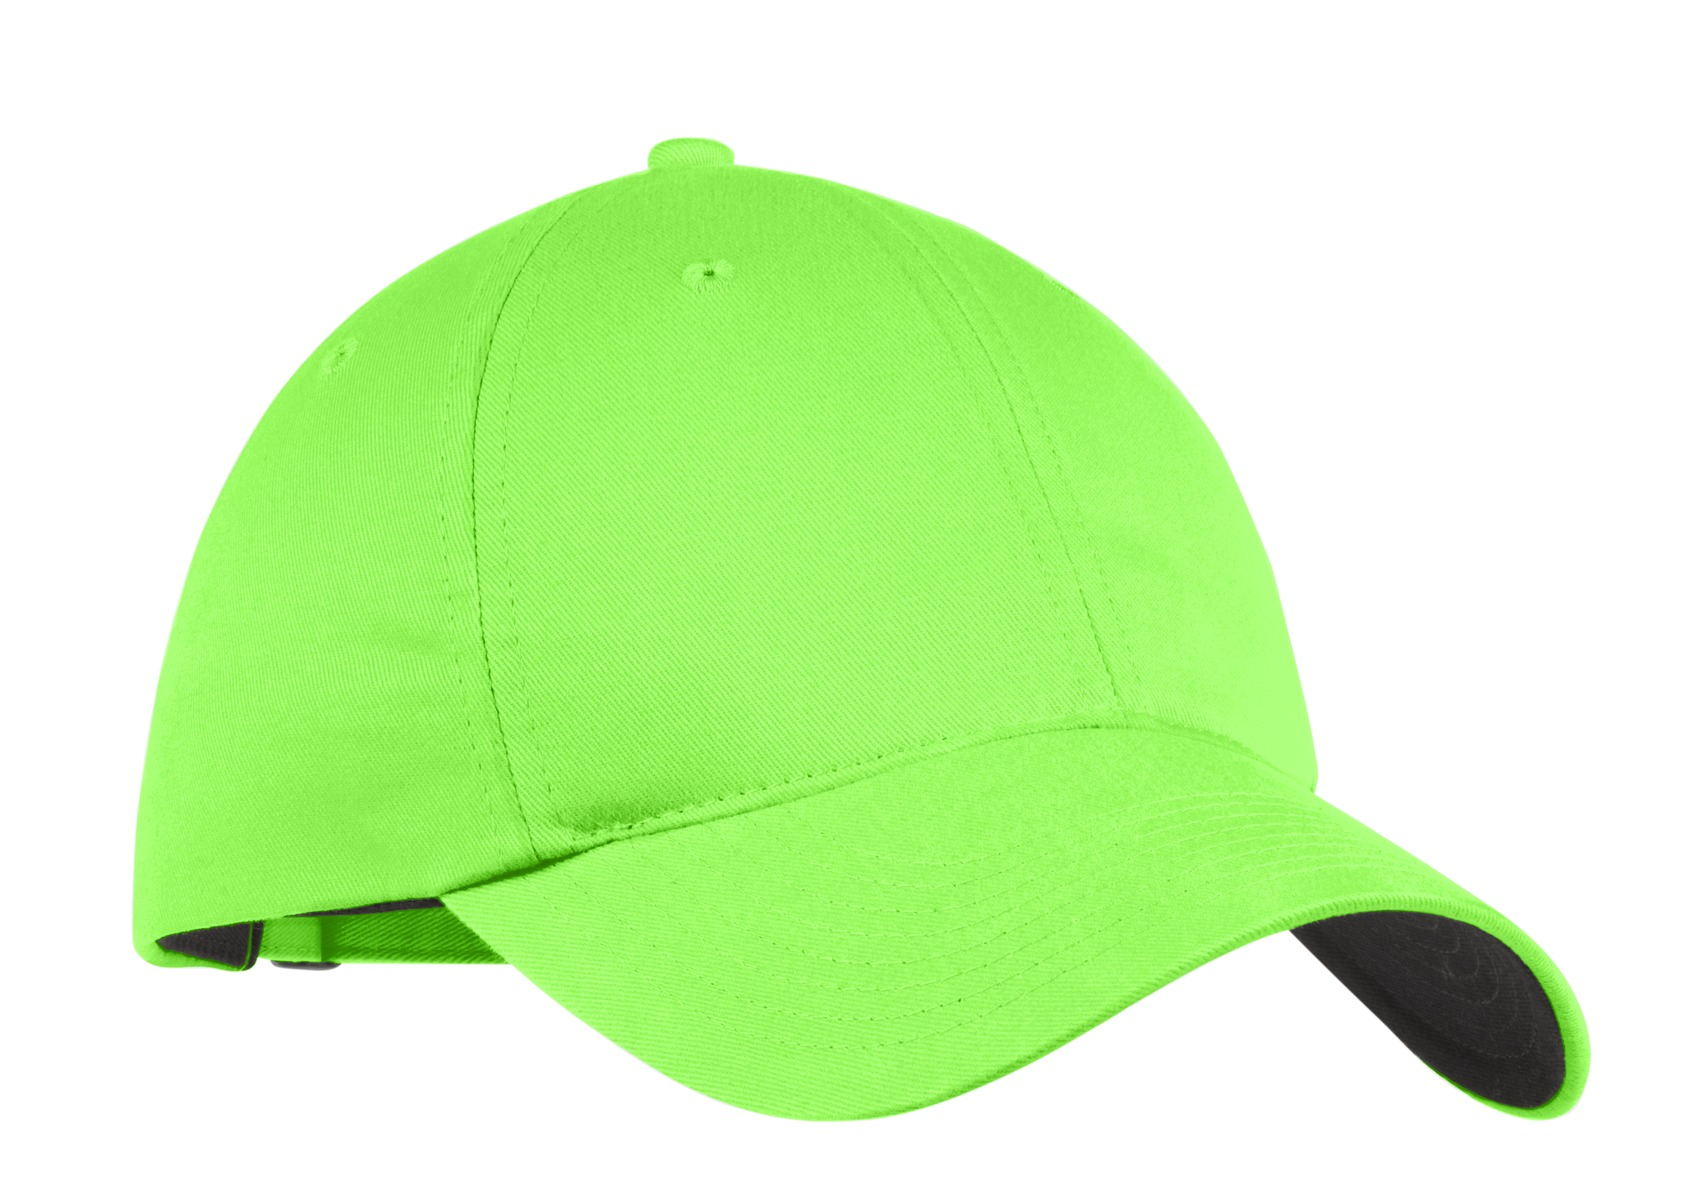 Nike Unstructured Twill Cap.  580087 - Mean Green